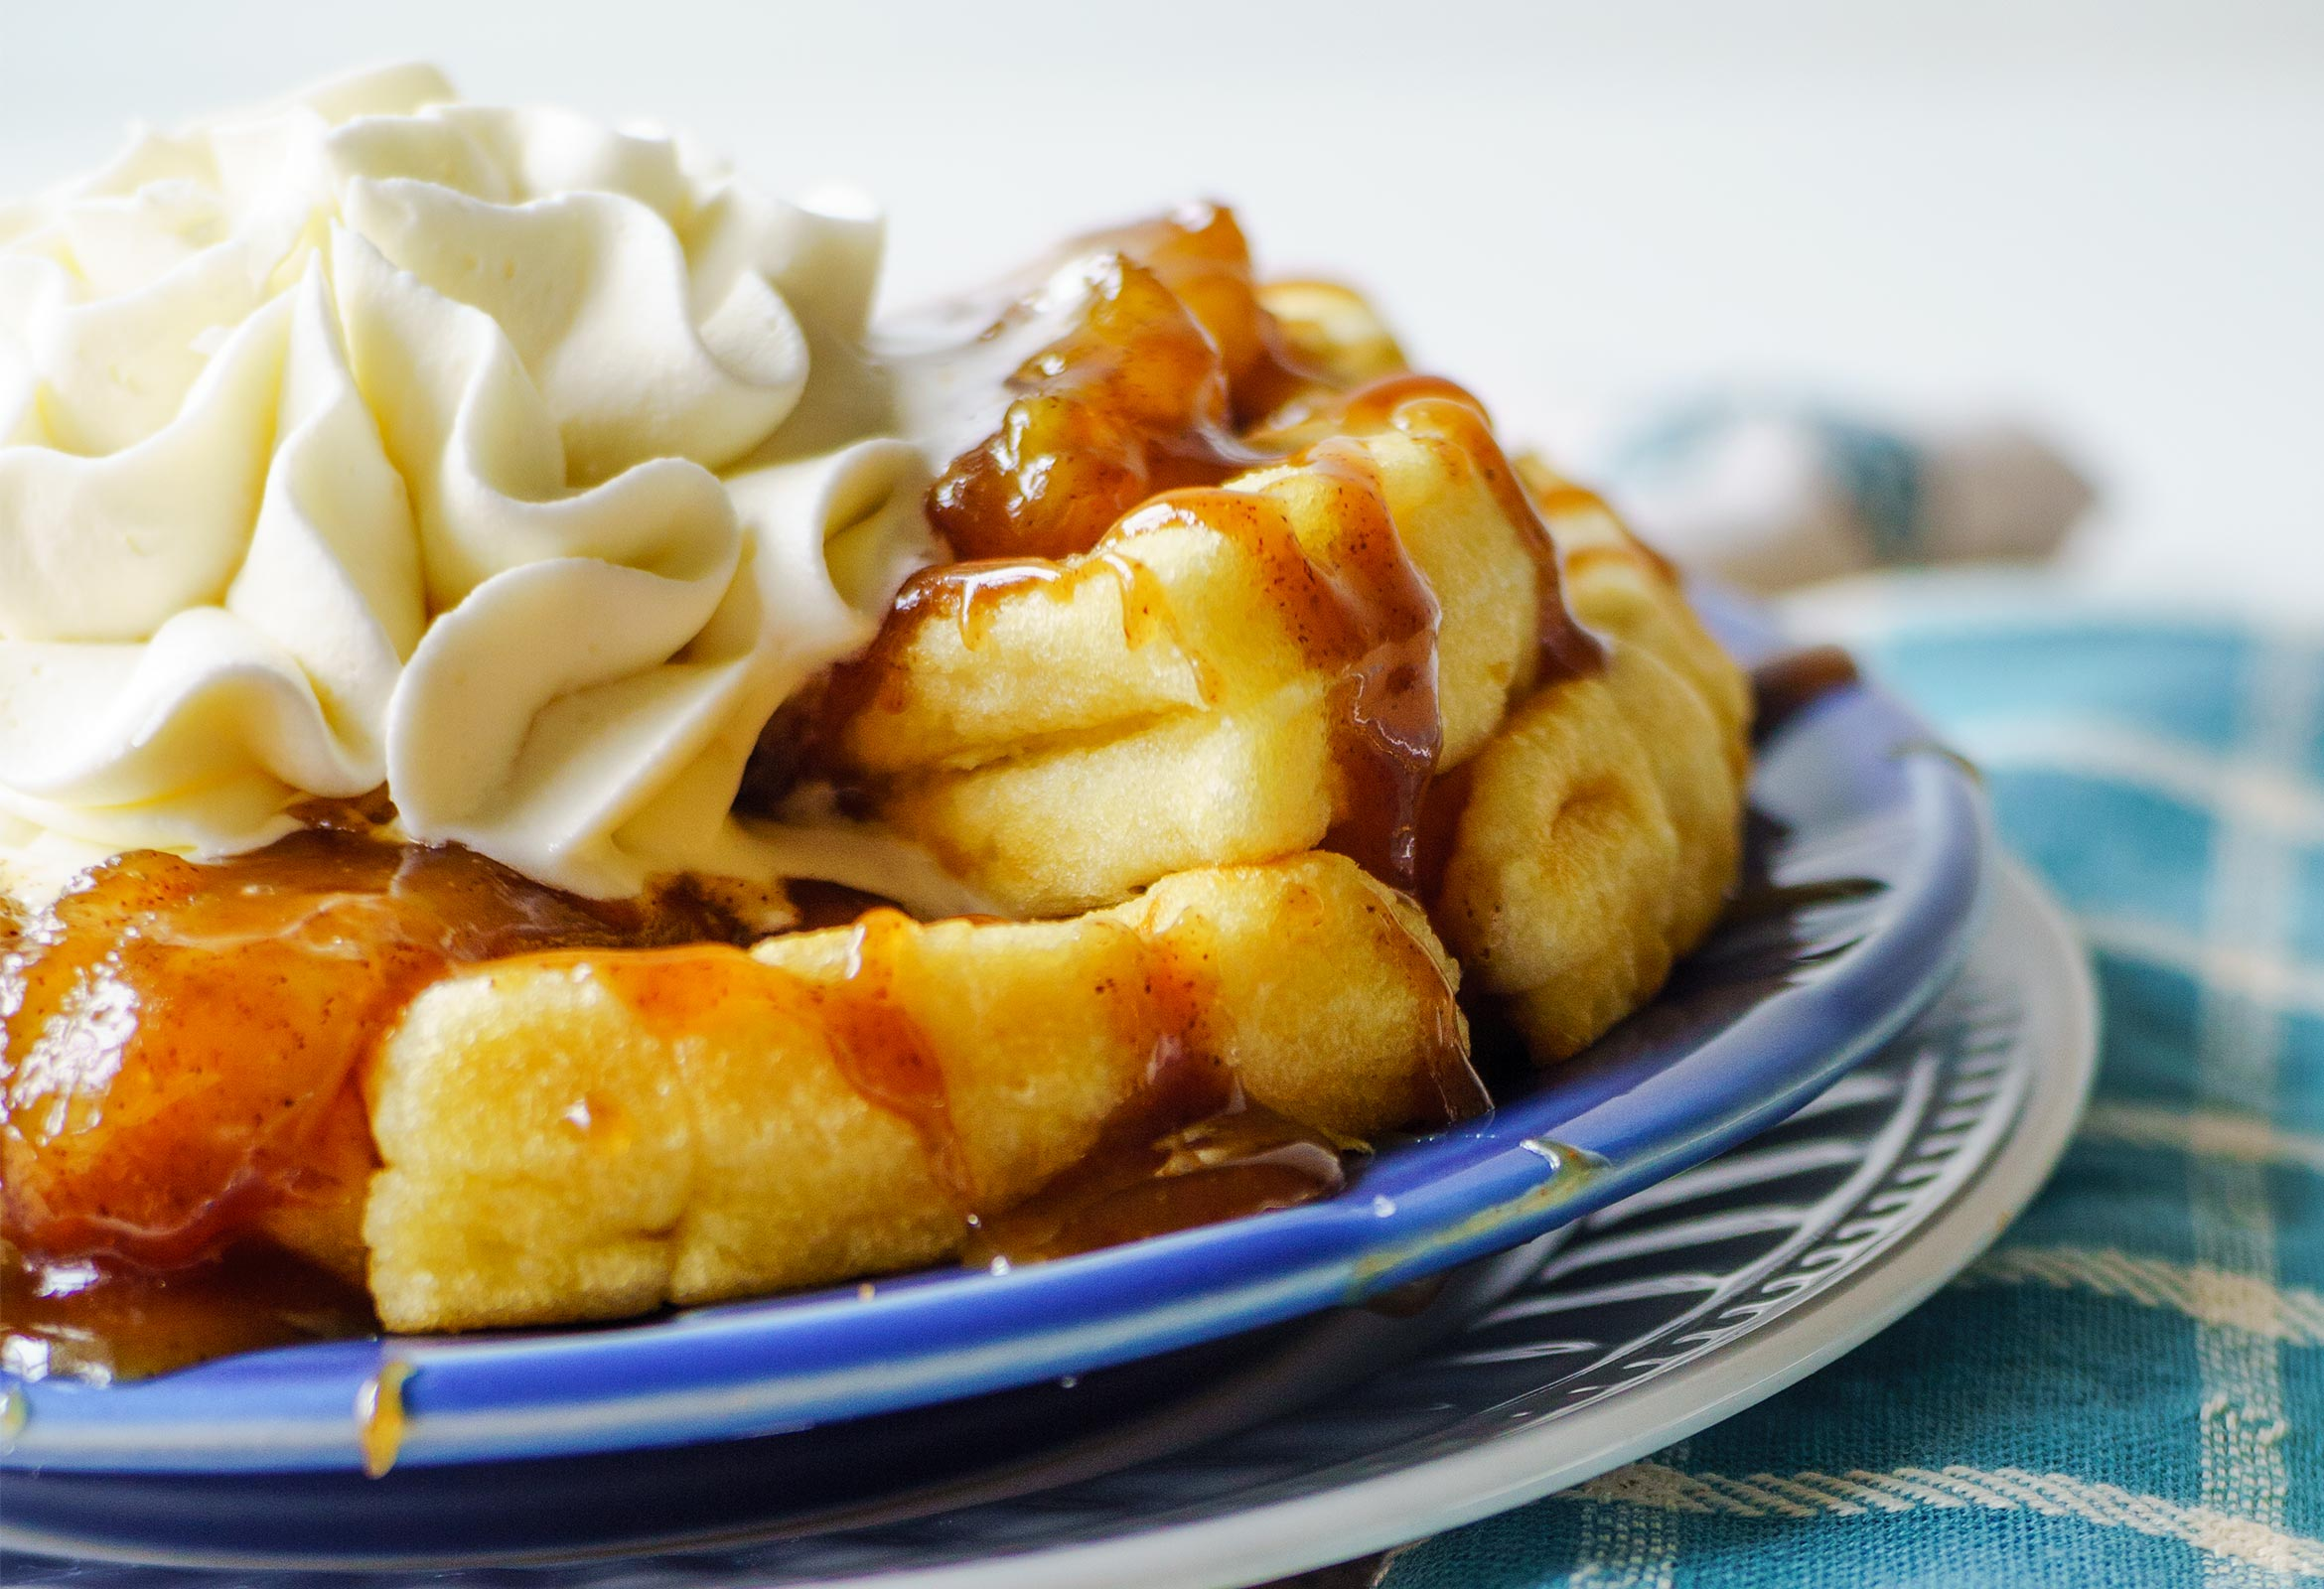 Waffles with Caramelized Bananas